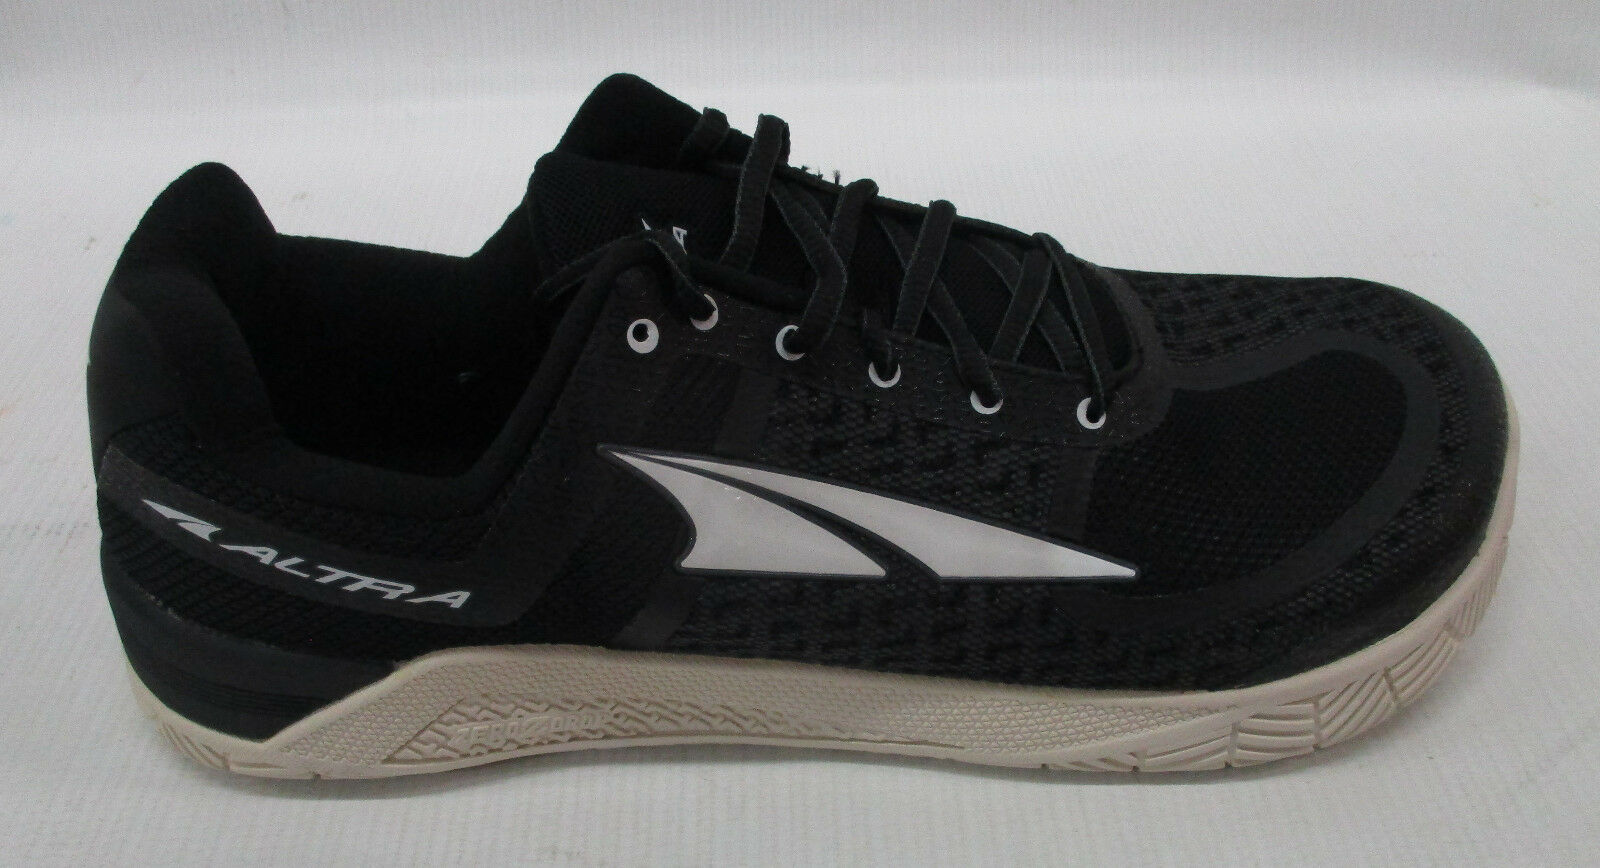 Altra Mens HIIT XT Cross Training shoes AFM1776P-1 AFM1776P-1 AFM1776P-1 Black Size 9.5 a4f5ff